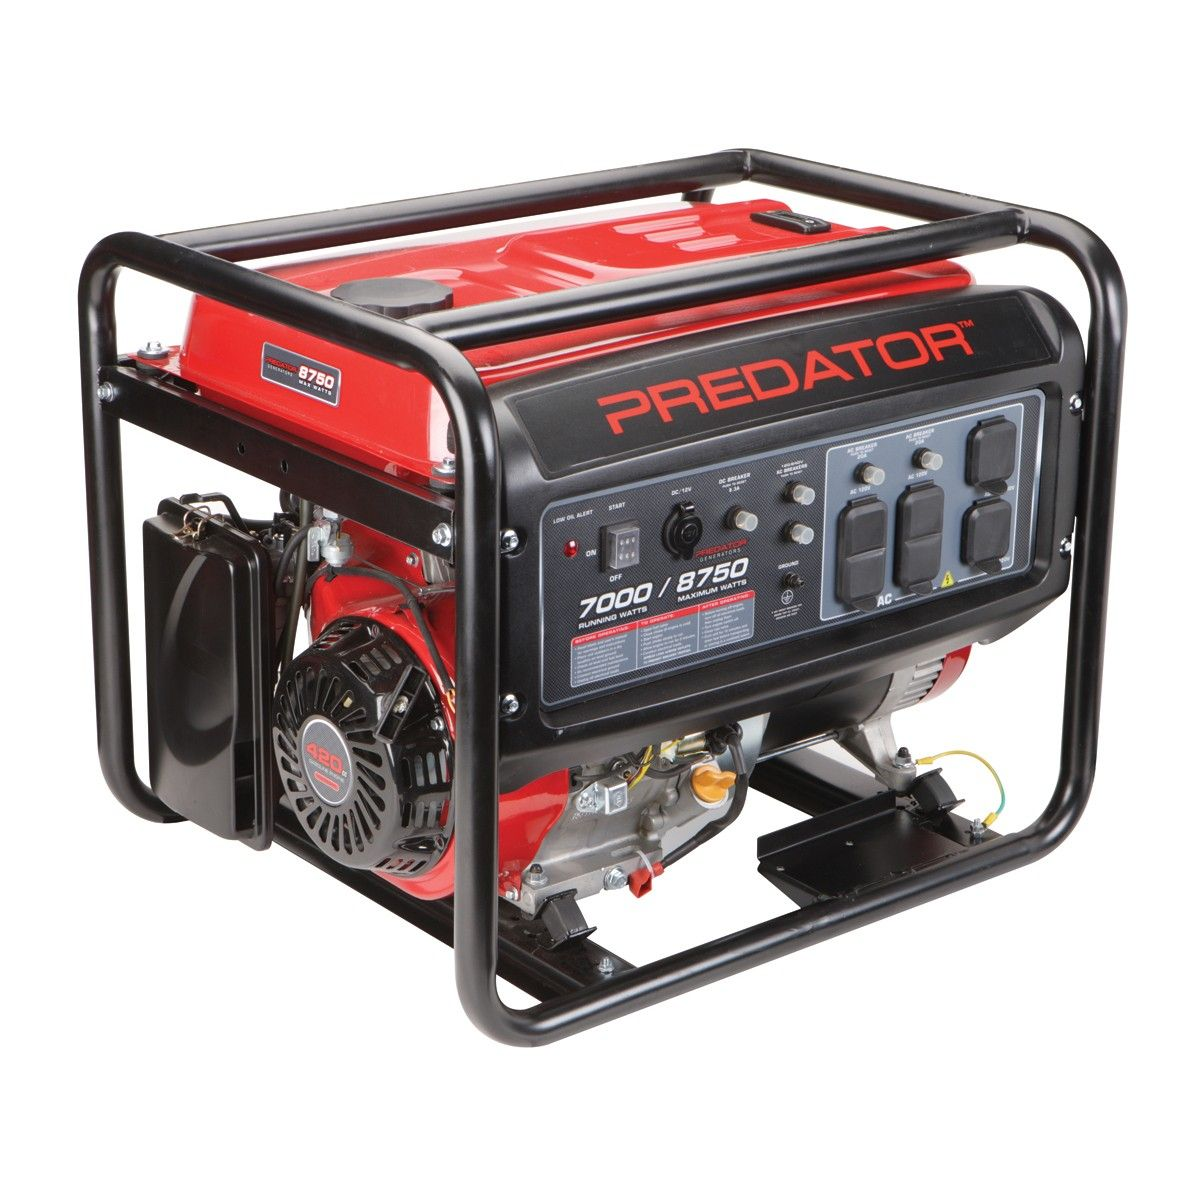 small resolution of 420cc 8750 watts max 7000 watts rated portable generator